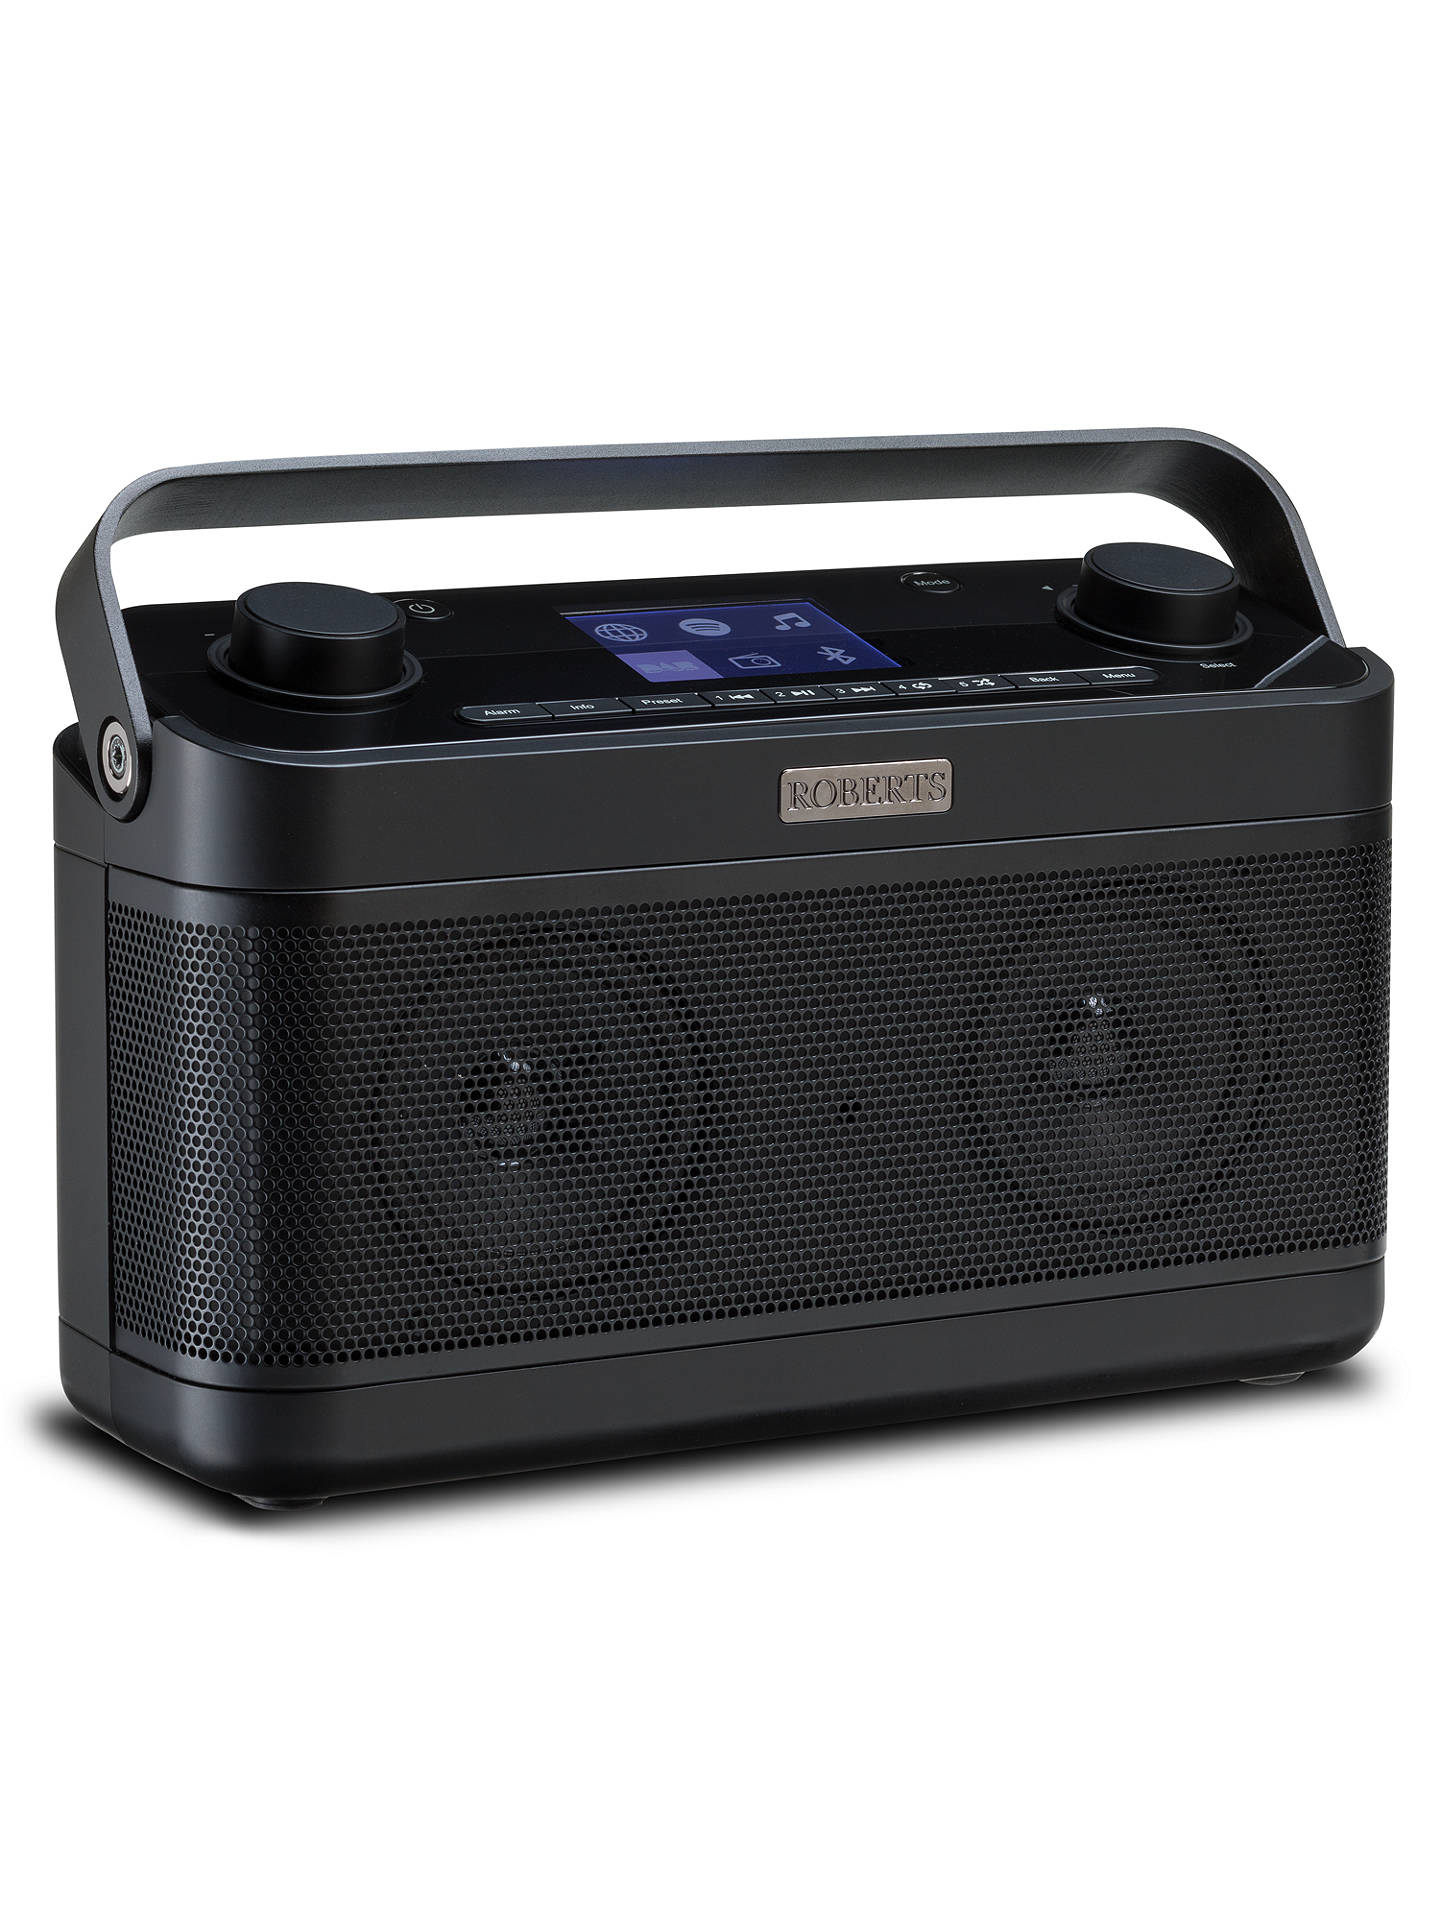 BuyROBERTS Stream 218 DAB+/FM/Internet Smart Radio with Bluetooth & Spotify Connect, Black Online at johnlewis.com